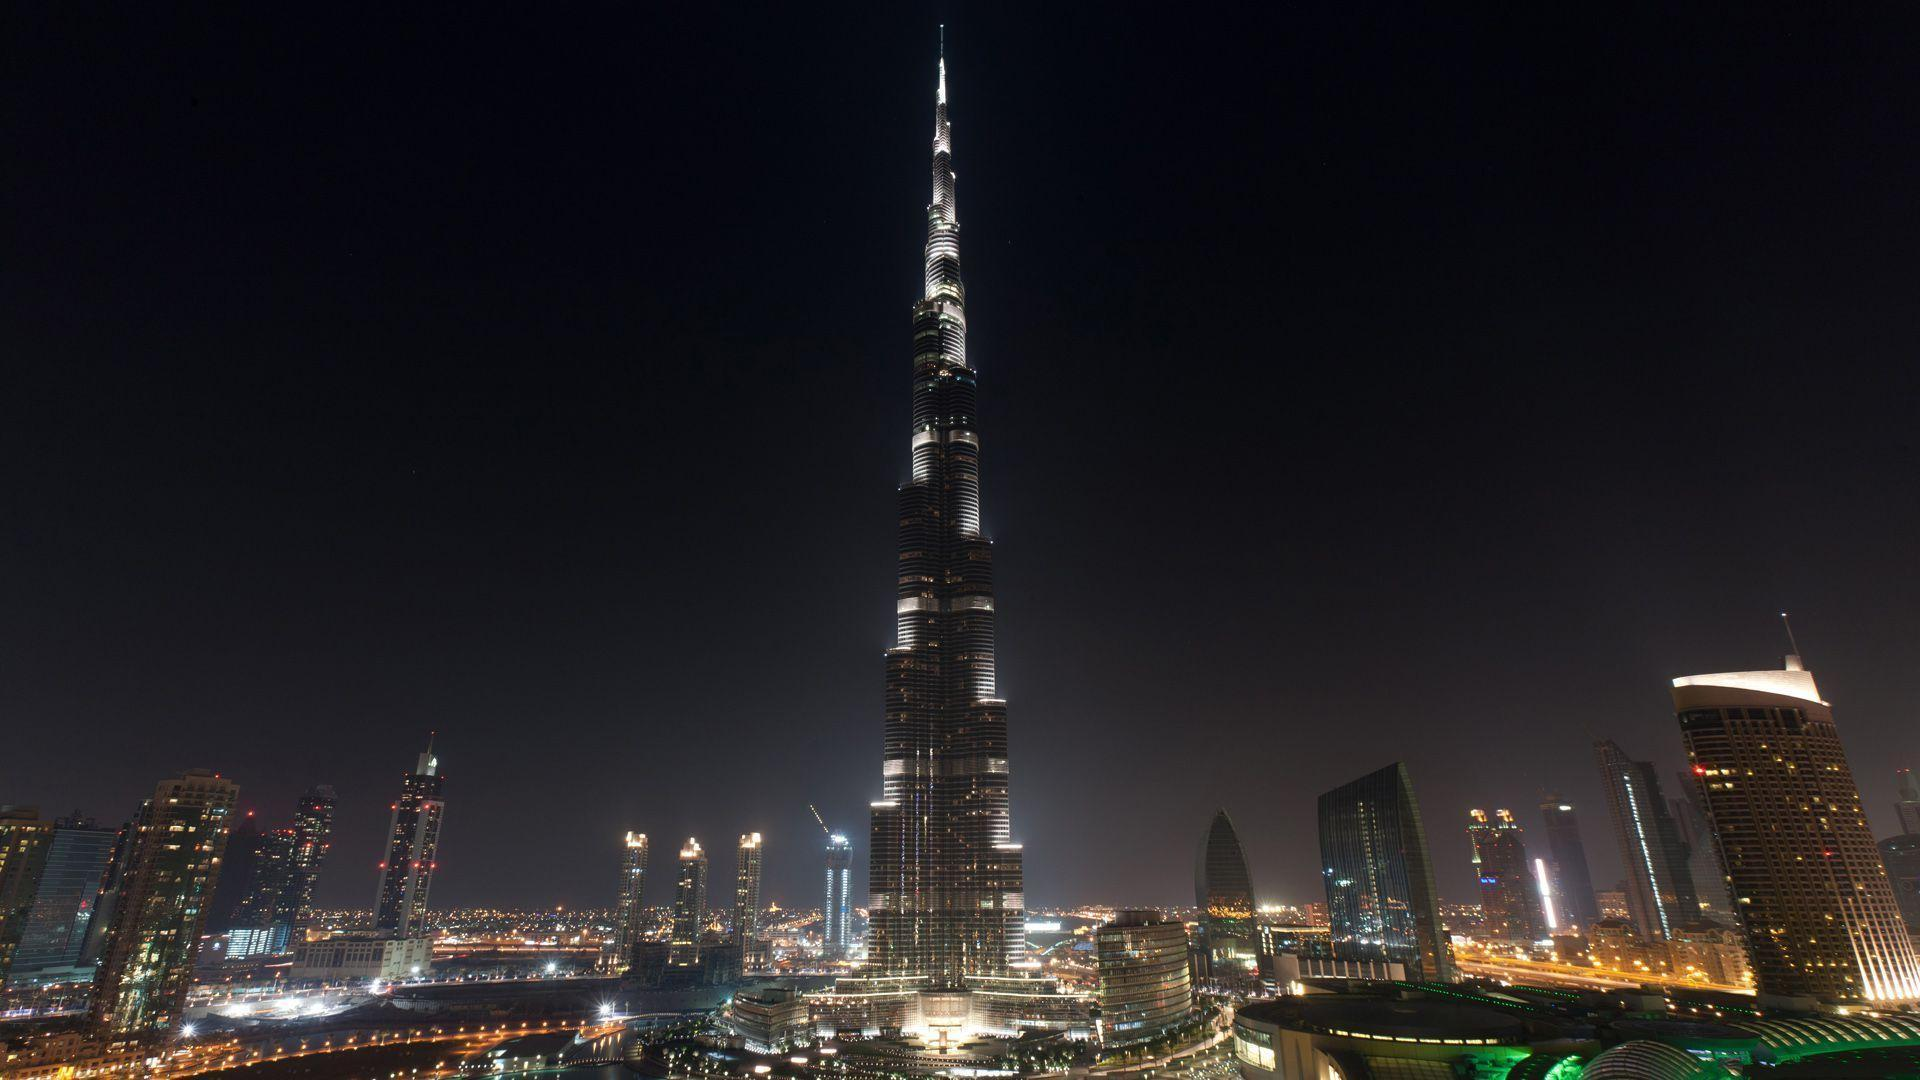 Burj Dubai HD Wallpapers - Travel HD Wallpapers